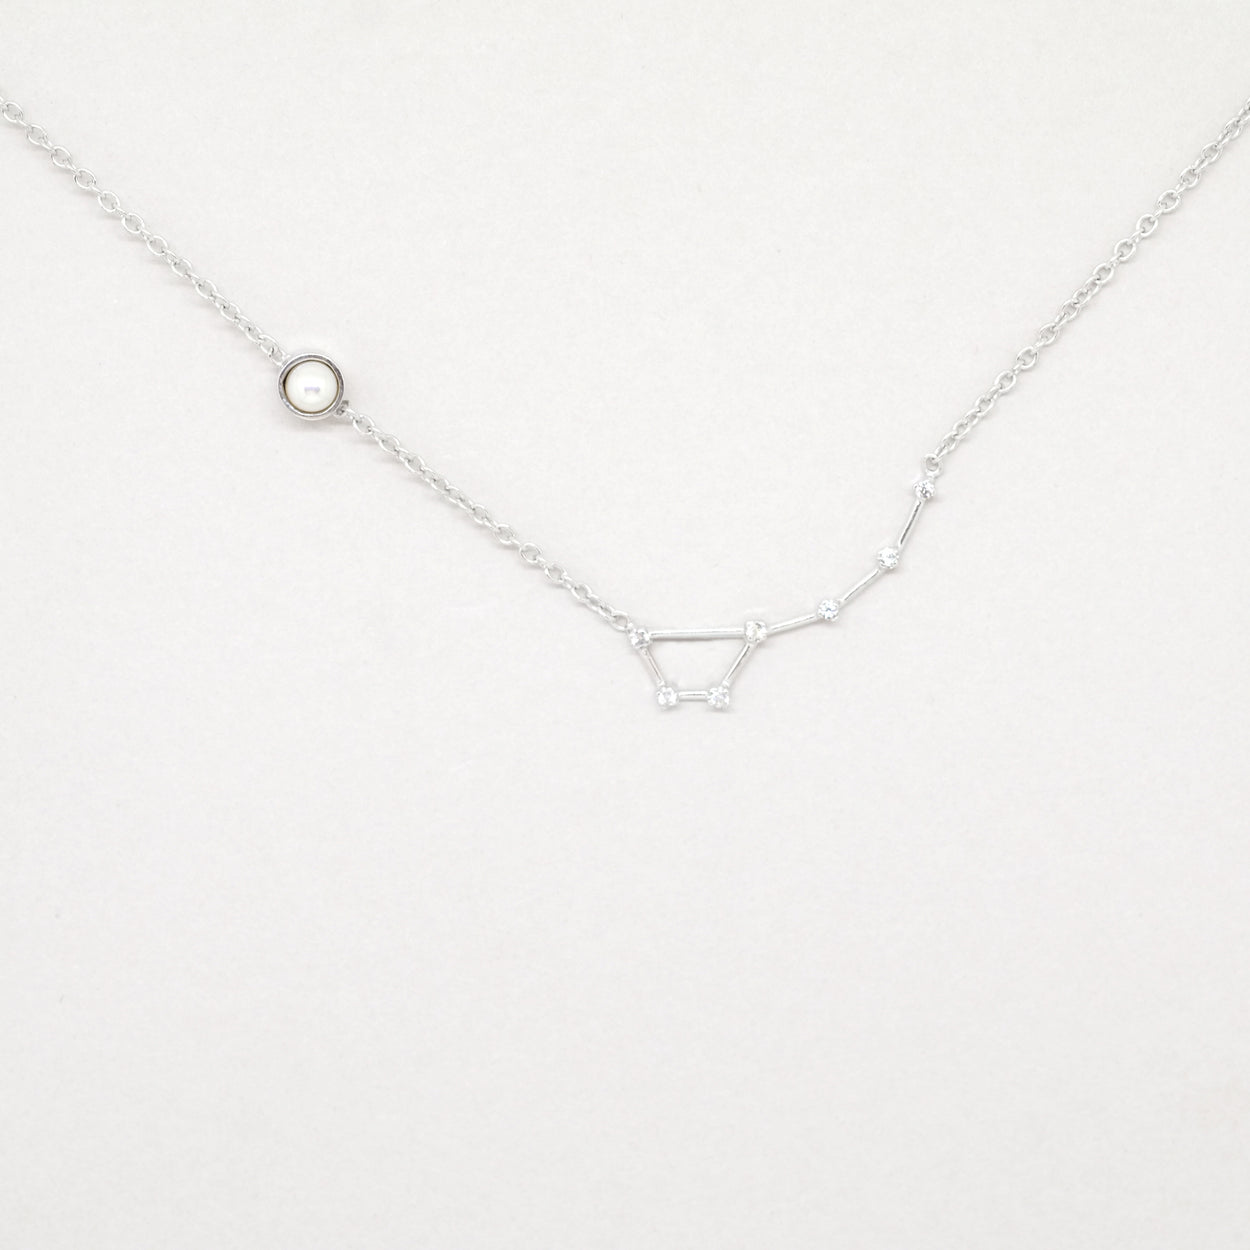 Constellation Little Dipper Necklace (Silver)